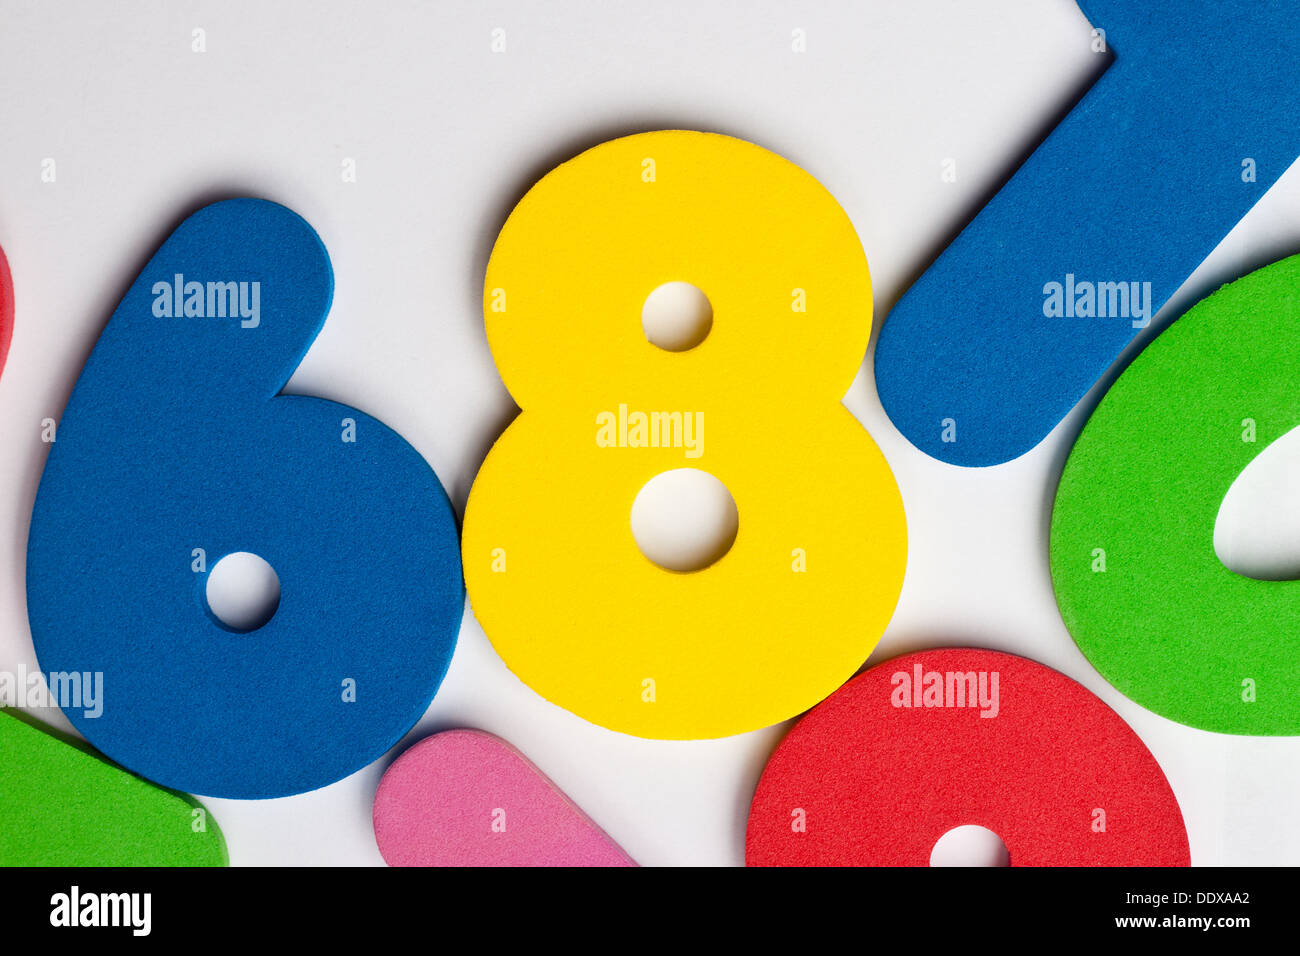 The number 8 in a group of ascending numbers Stock Photo